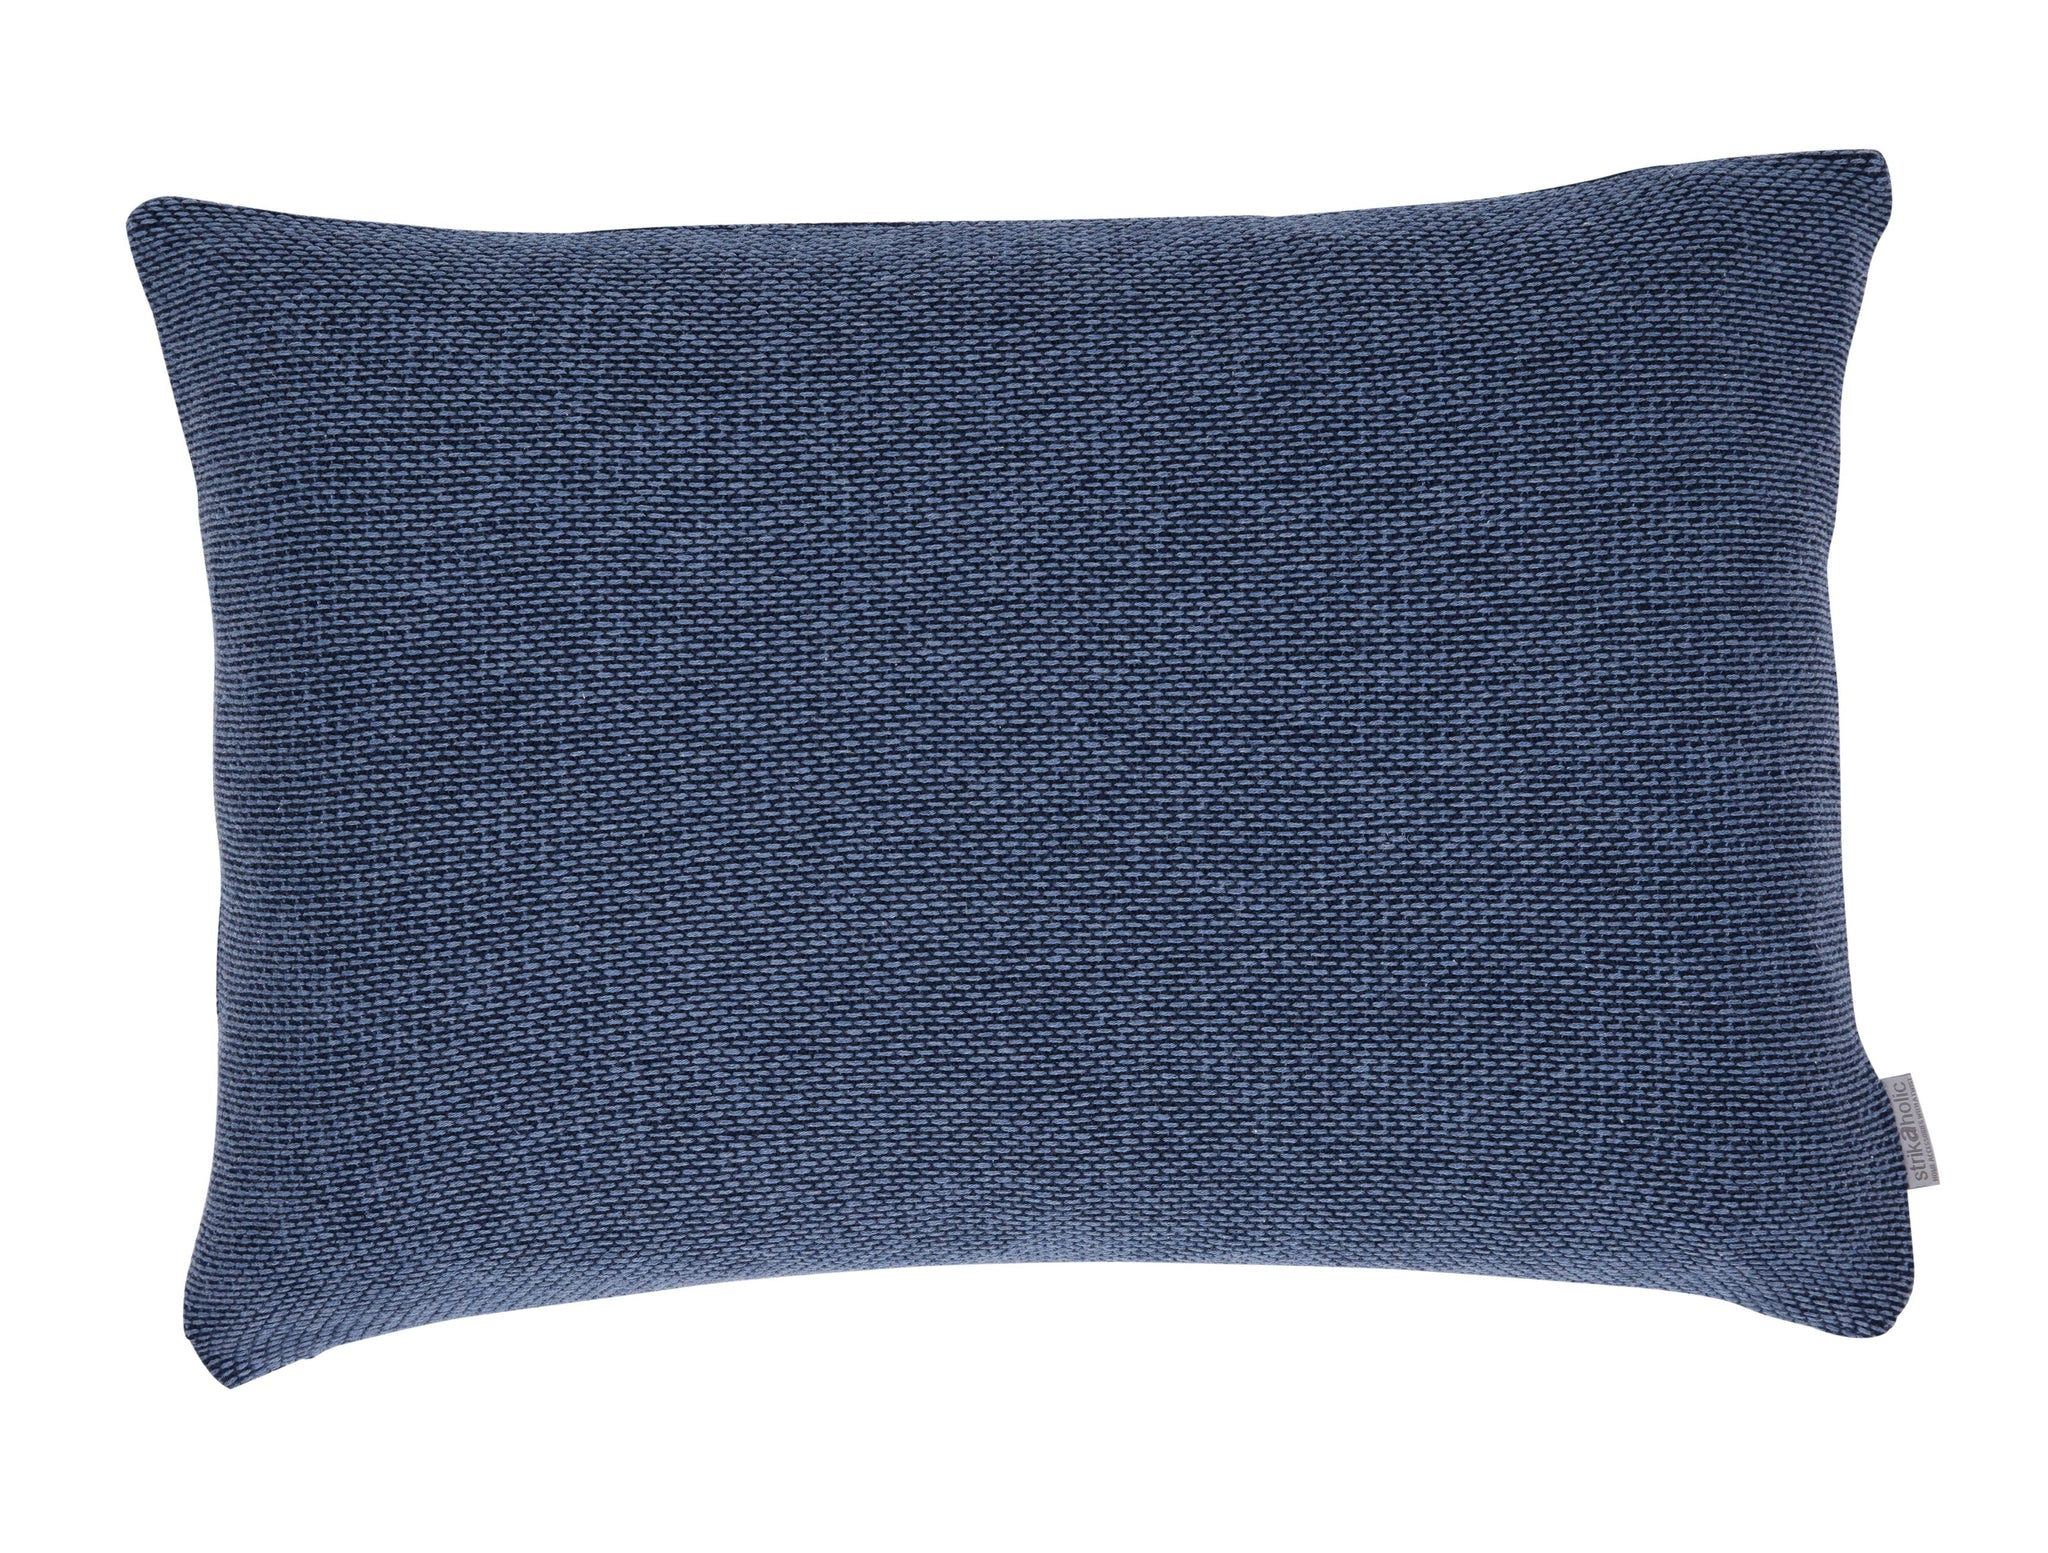 Beads cushion, 40X60 and 60X90, dark blue